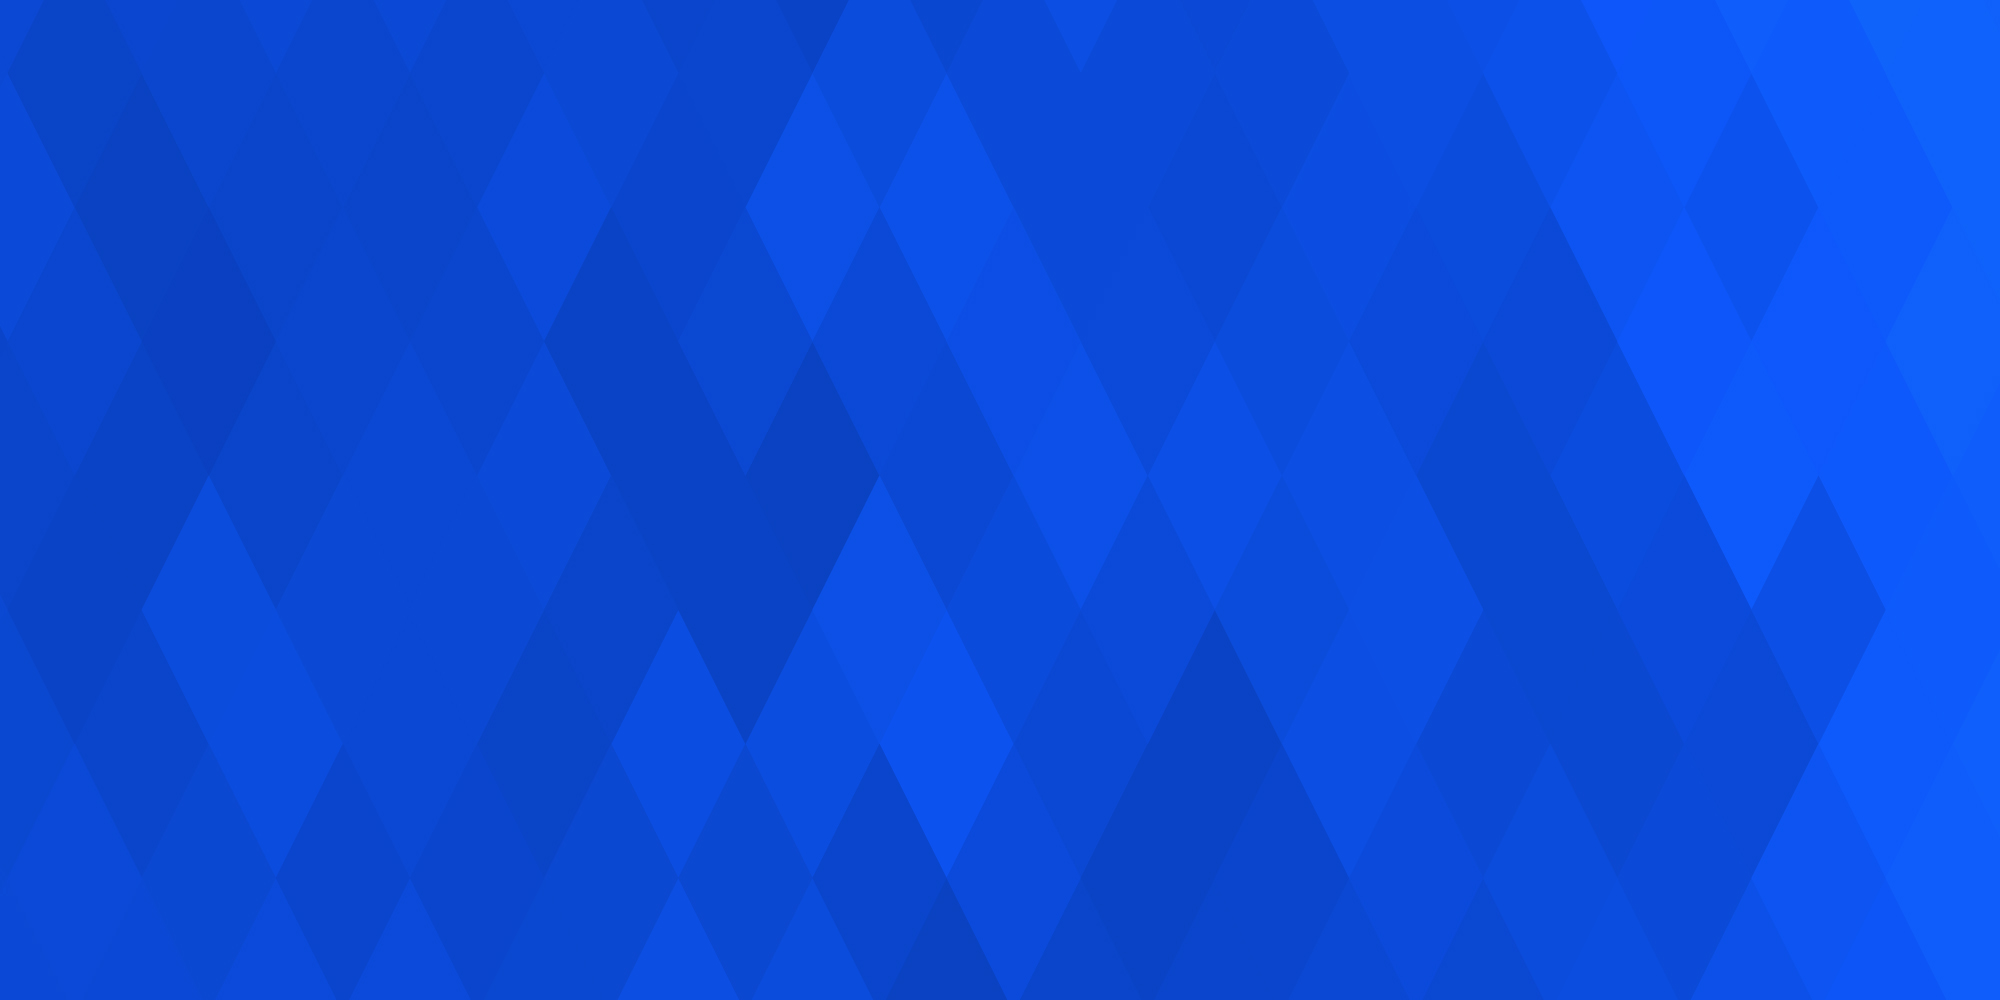 IBM blue pattern